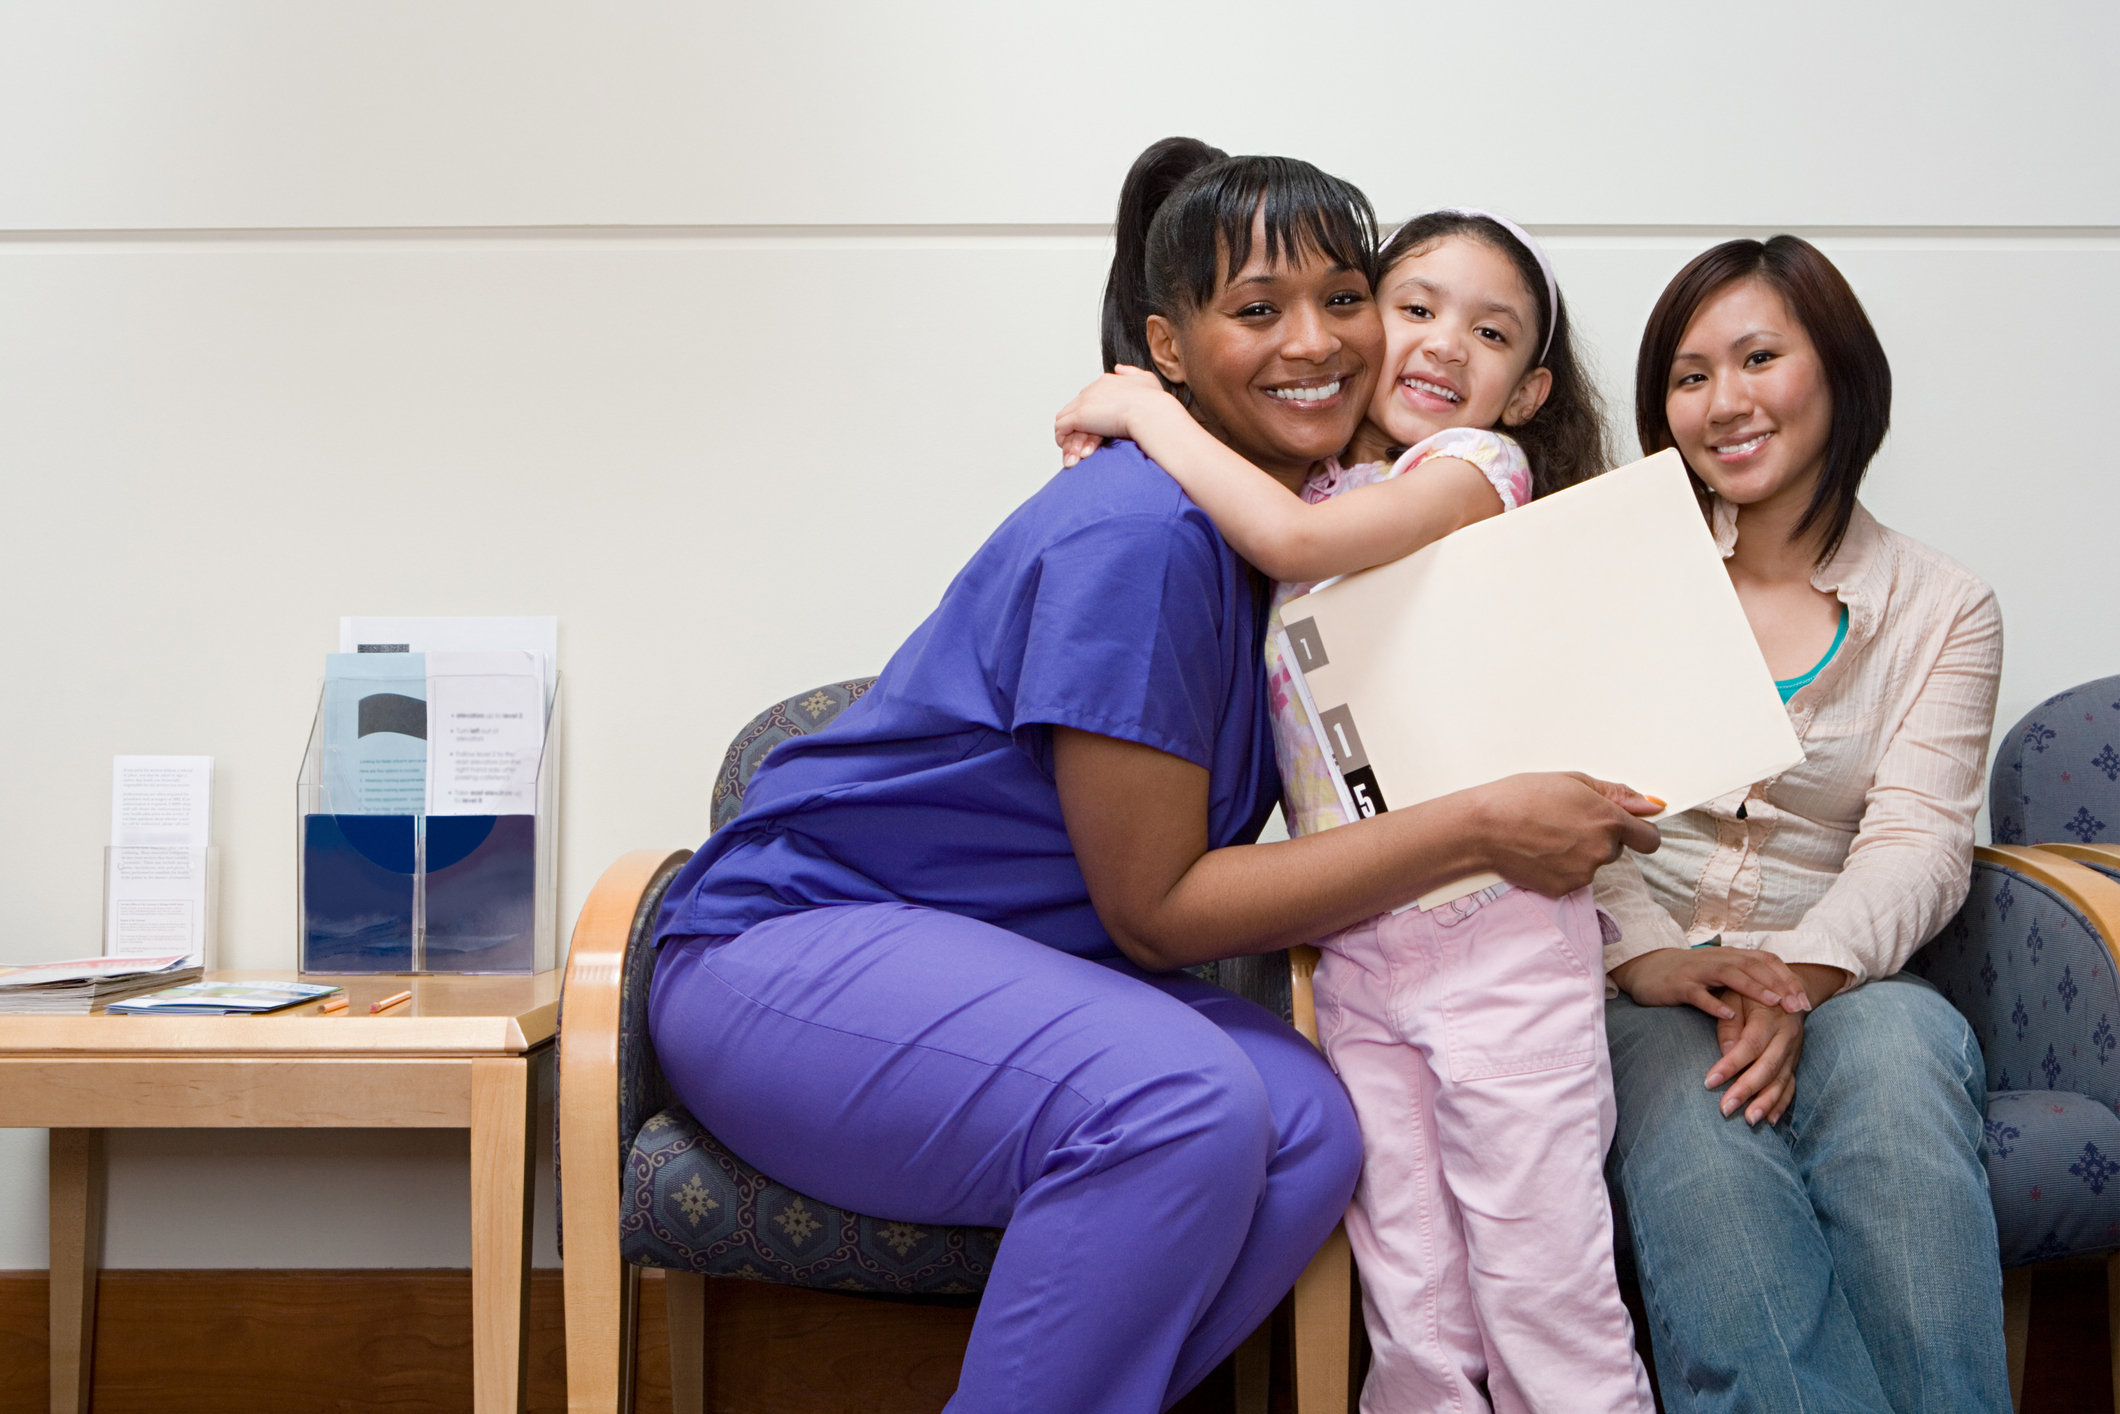 Pediatric RNs change children's lives